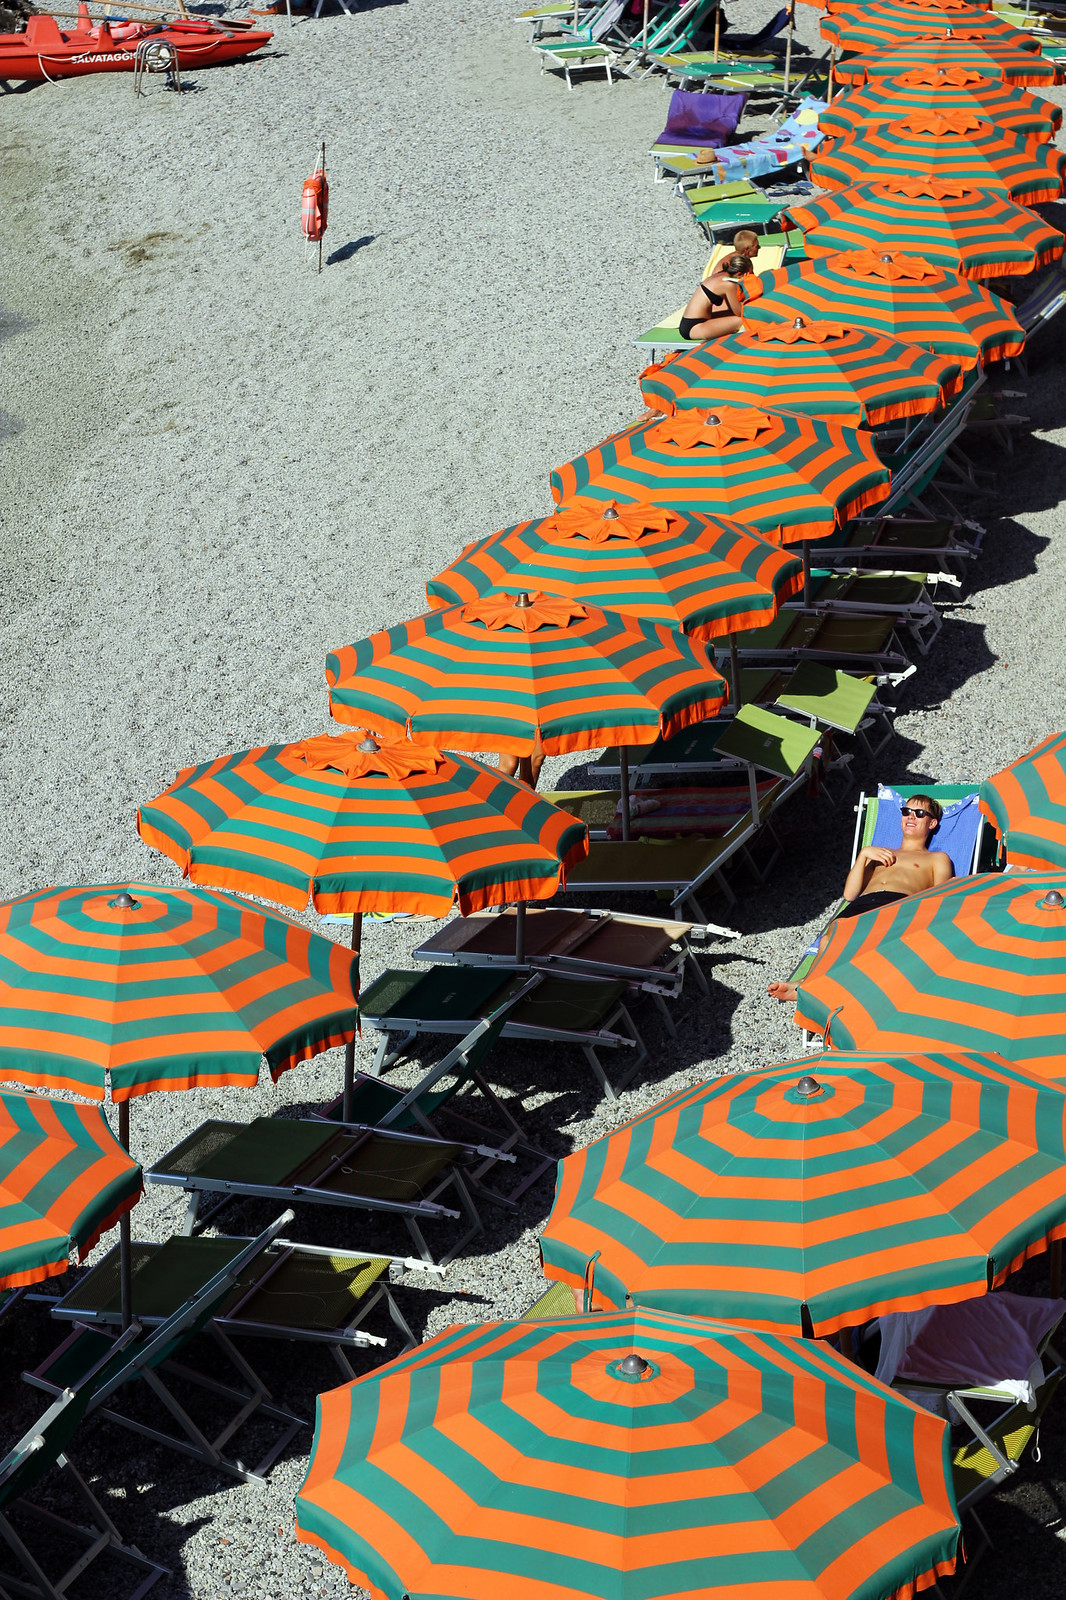 Monterosso Cinque Terre orange striped beach umbrellas